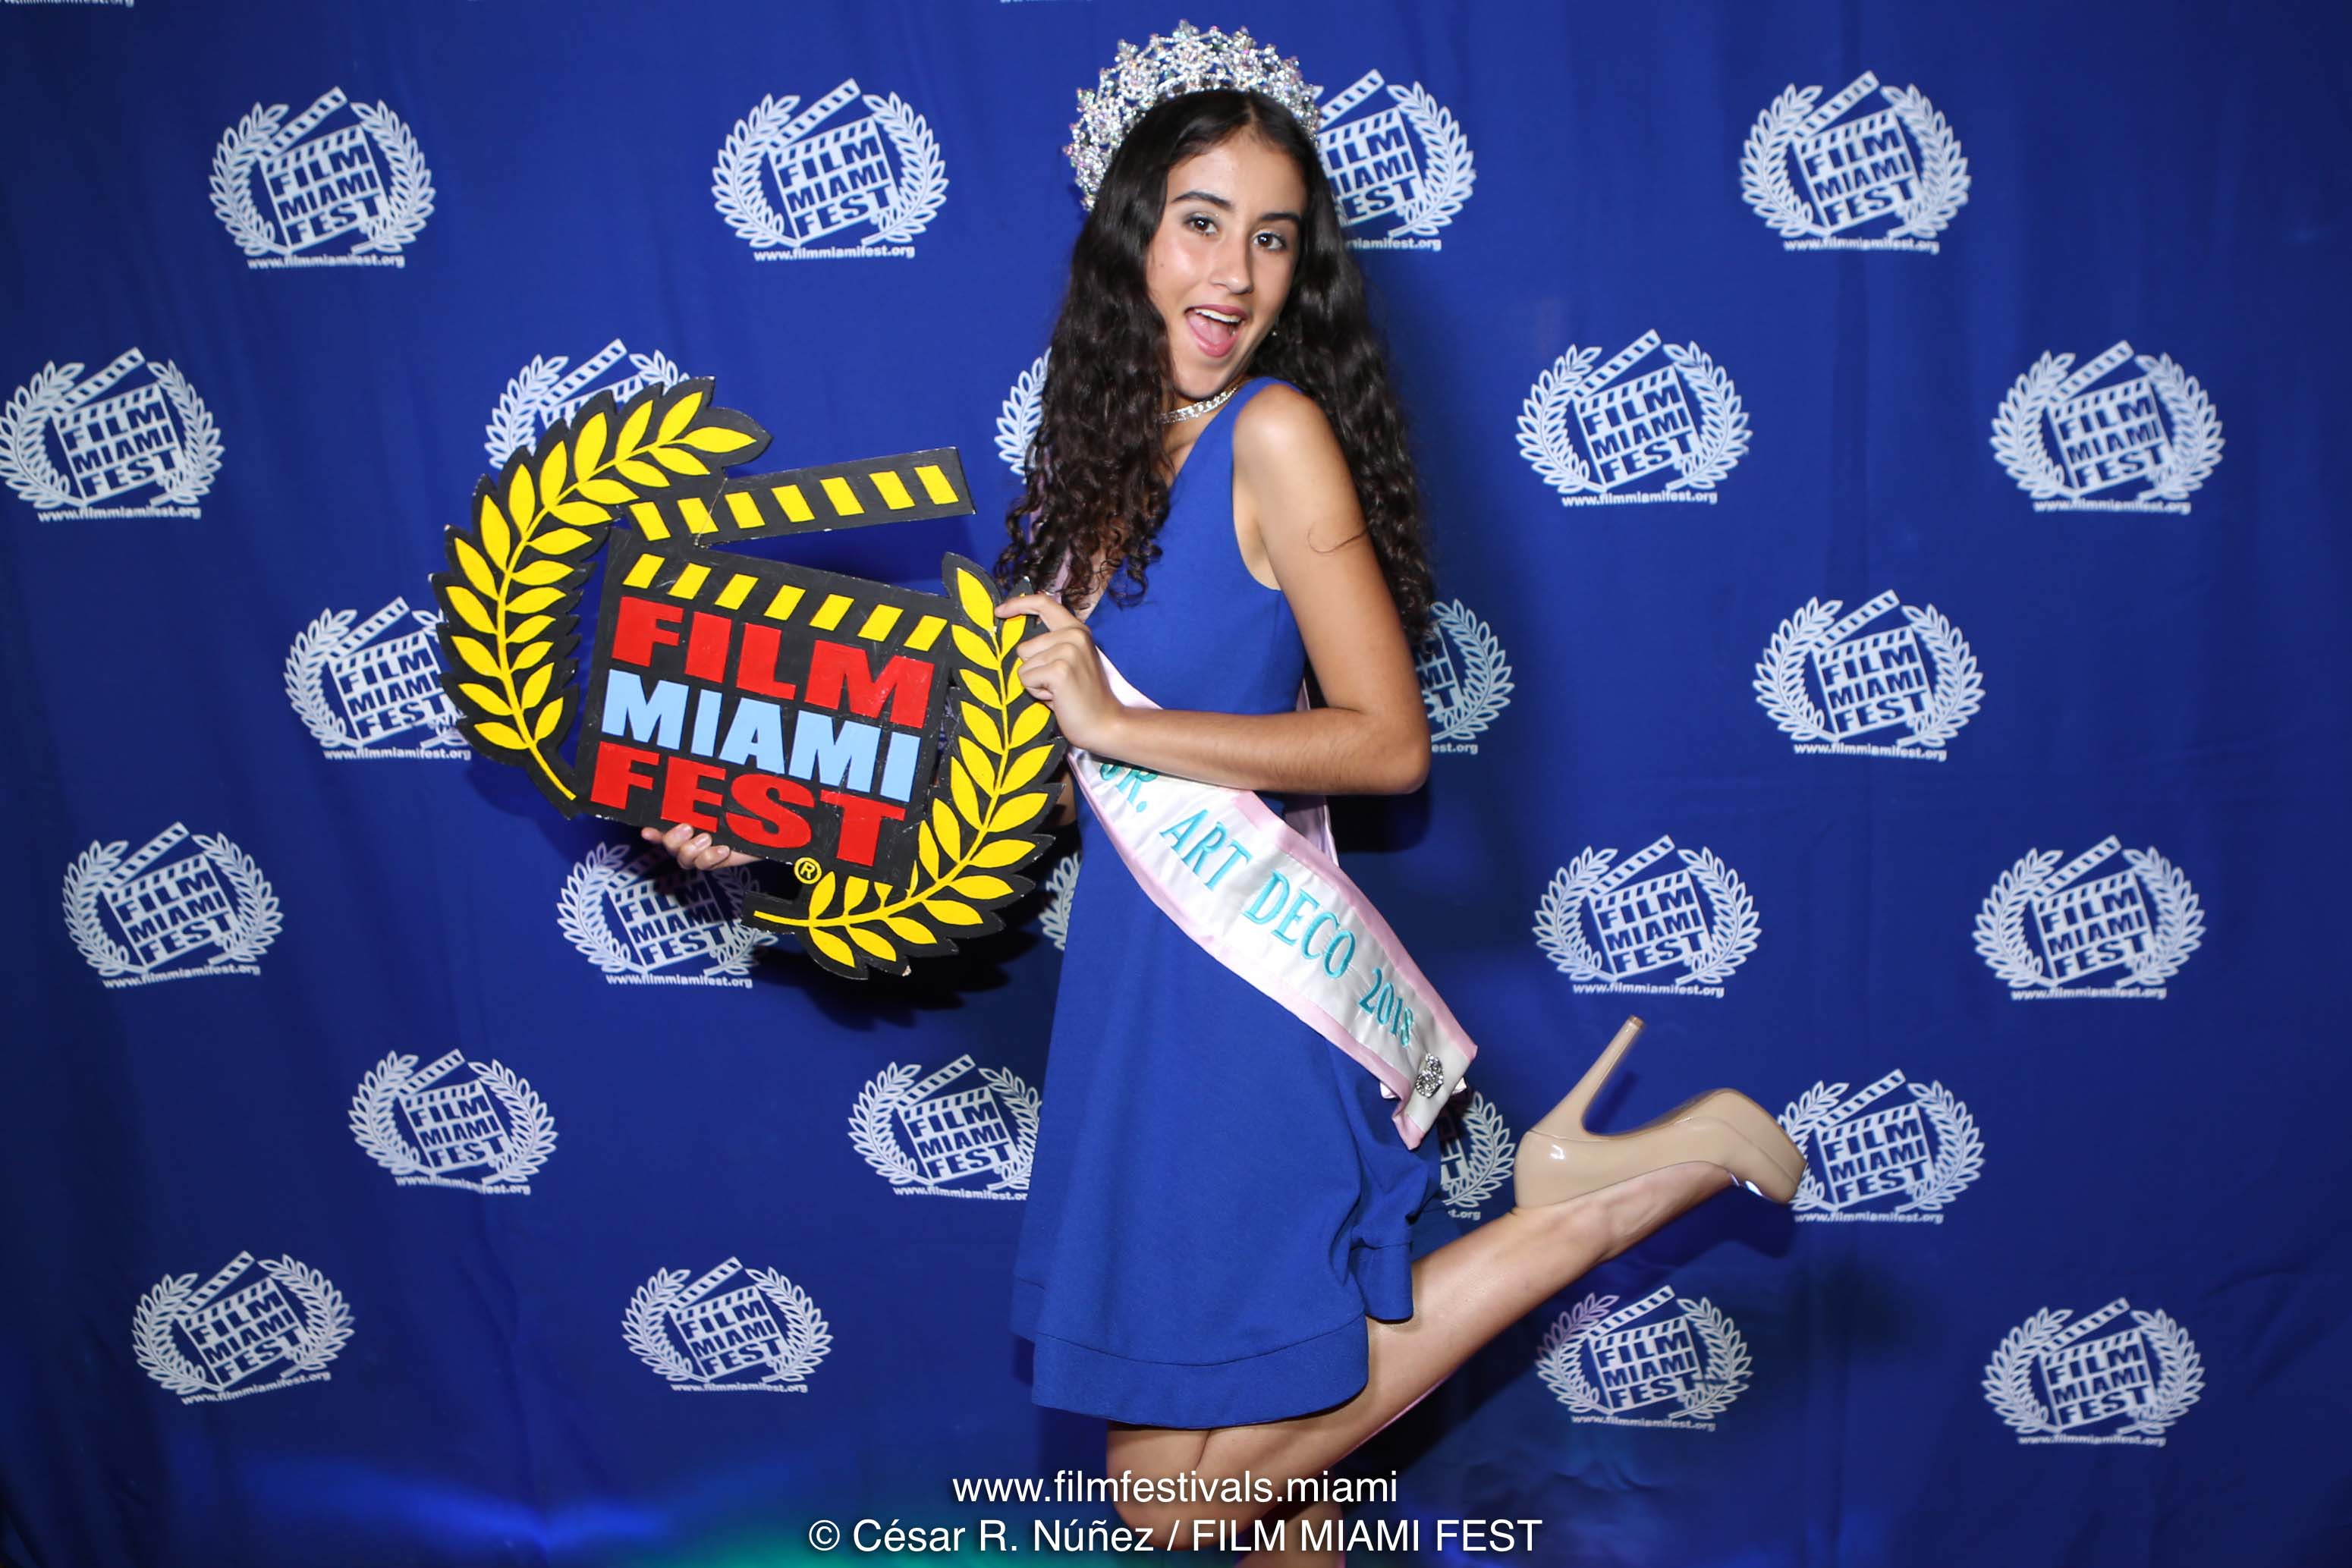 FILM MIAMI FEST SABORES APRIL 14 2018 CESAR NUNEZ-111.jpg